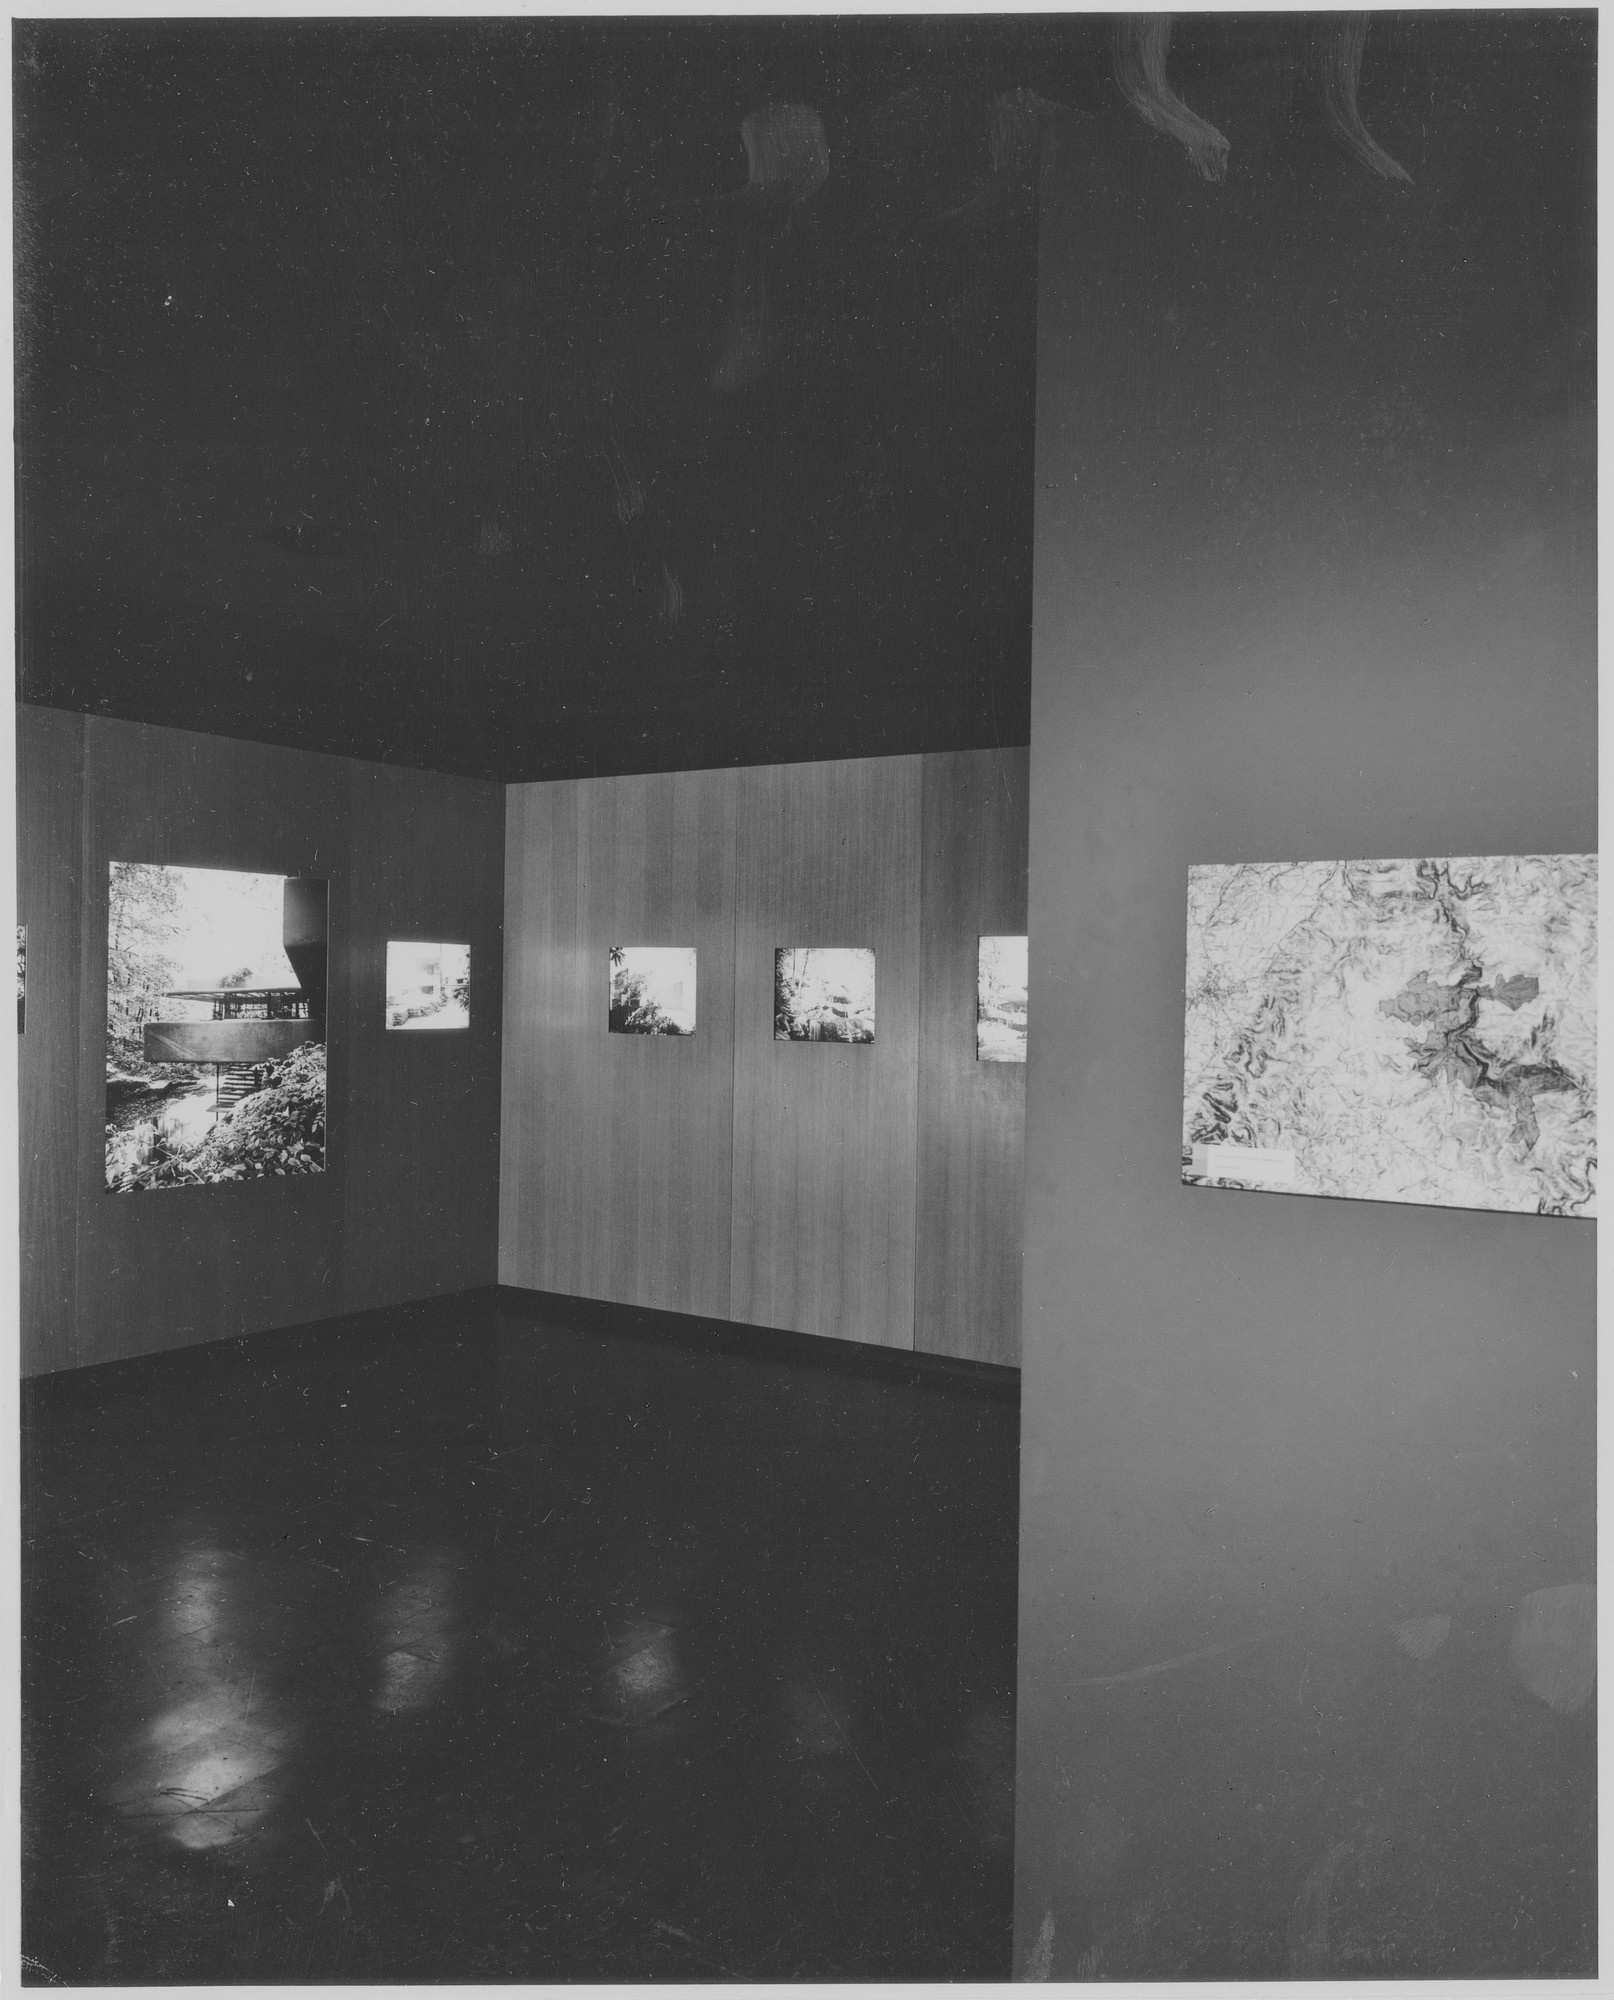 "Installation view of the exhibition, ""Falling Water:  A Frank Lloyd Wright House Revisited."" November 1, 1963–December 1, 1963. Photographic Archive. The Museum of Modern Art Archives, New York. IN731.1. Photograph by George Barrows."